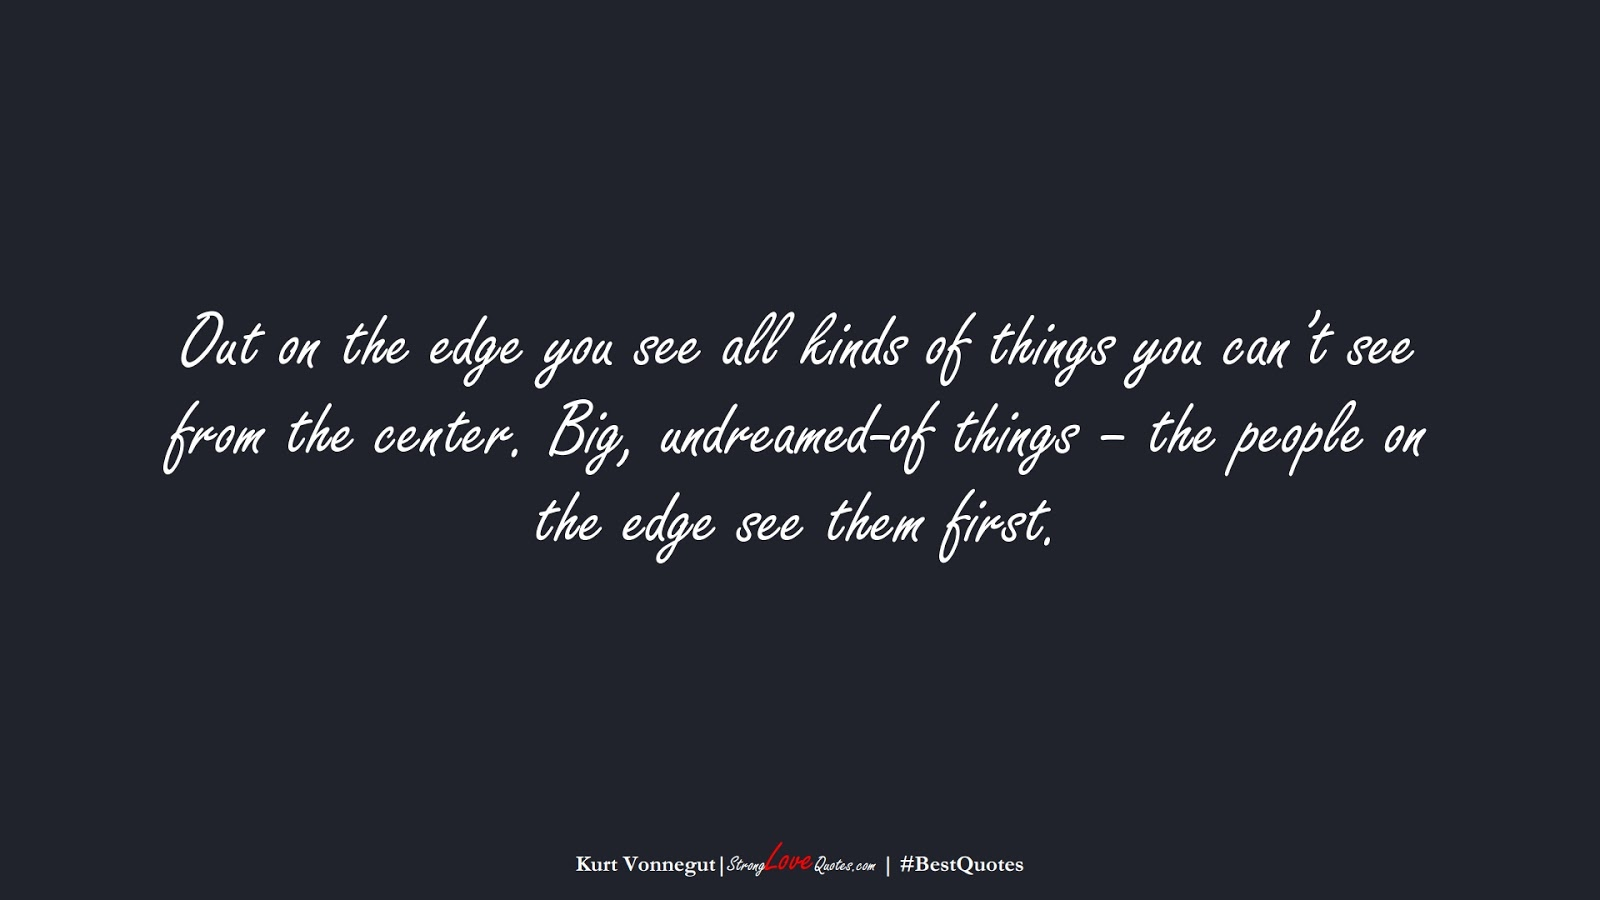 Out on the edge you see all kinds of things you can't see from the center. Big, undreamed-of things – the people on the edge see them first. (Kurt Vonnegut);  #BestQuotes